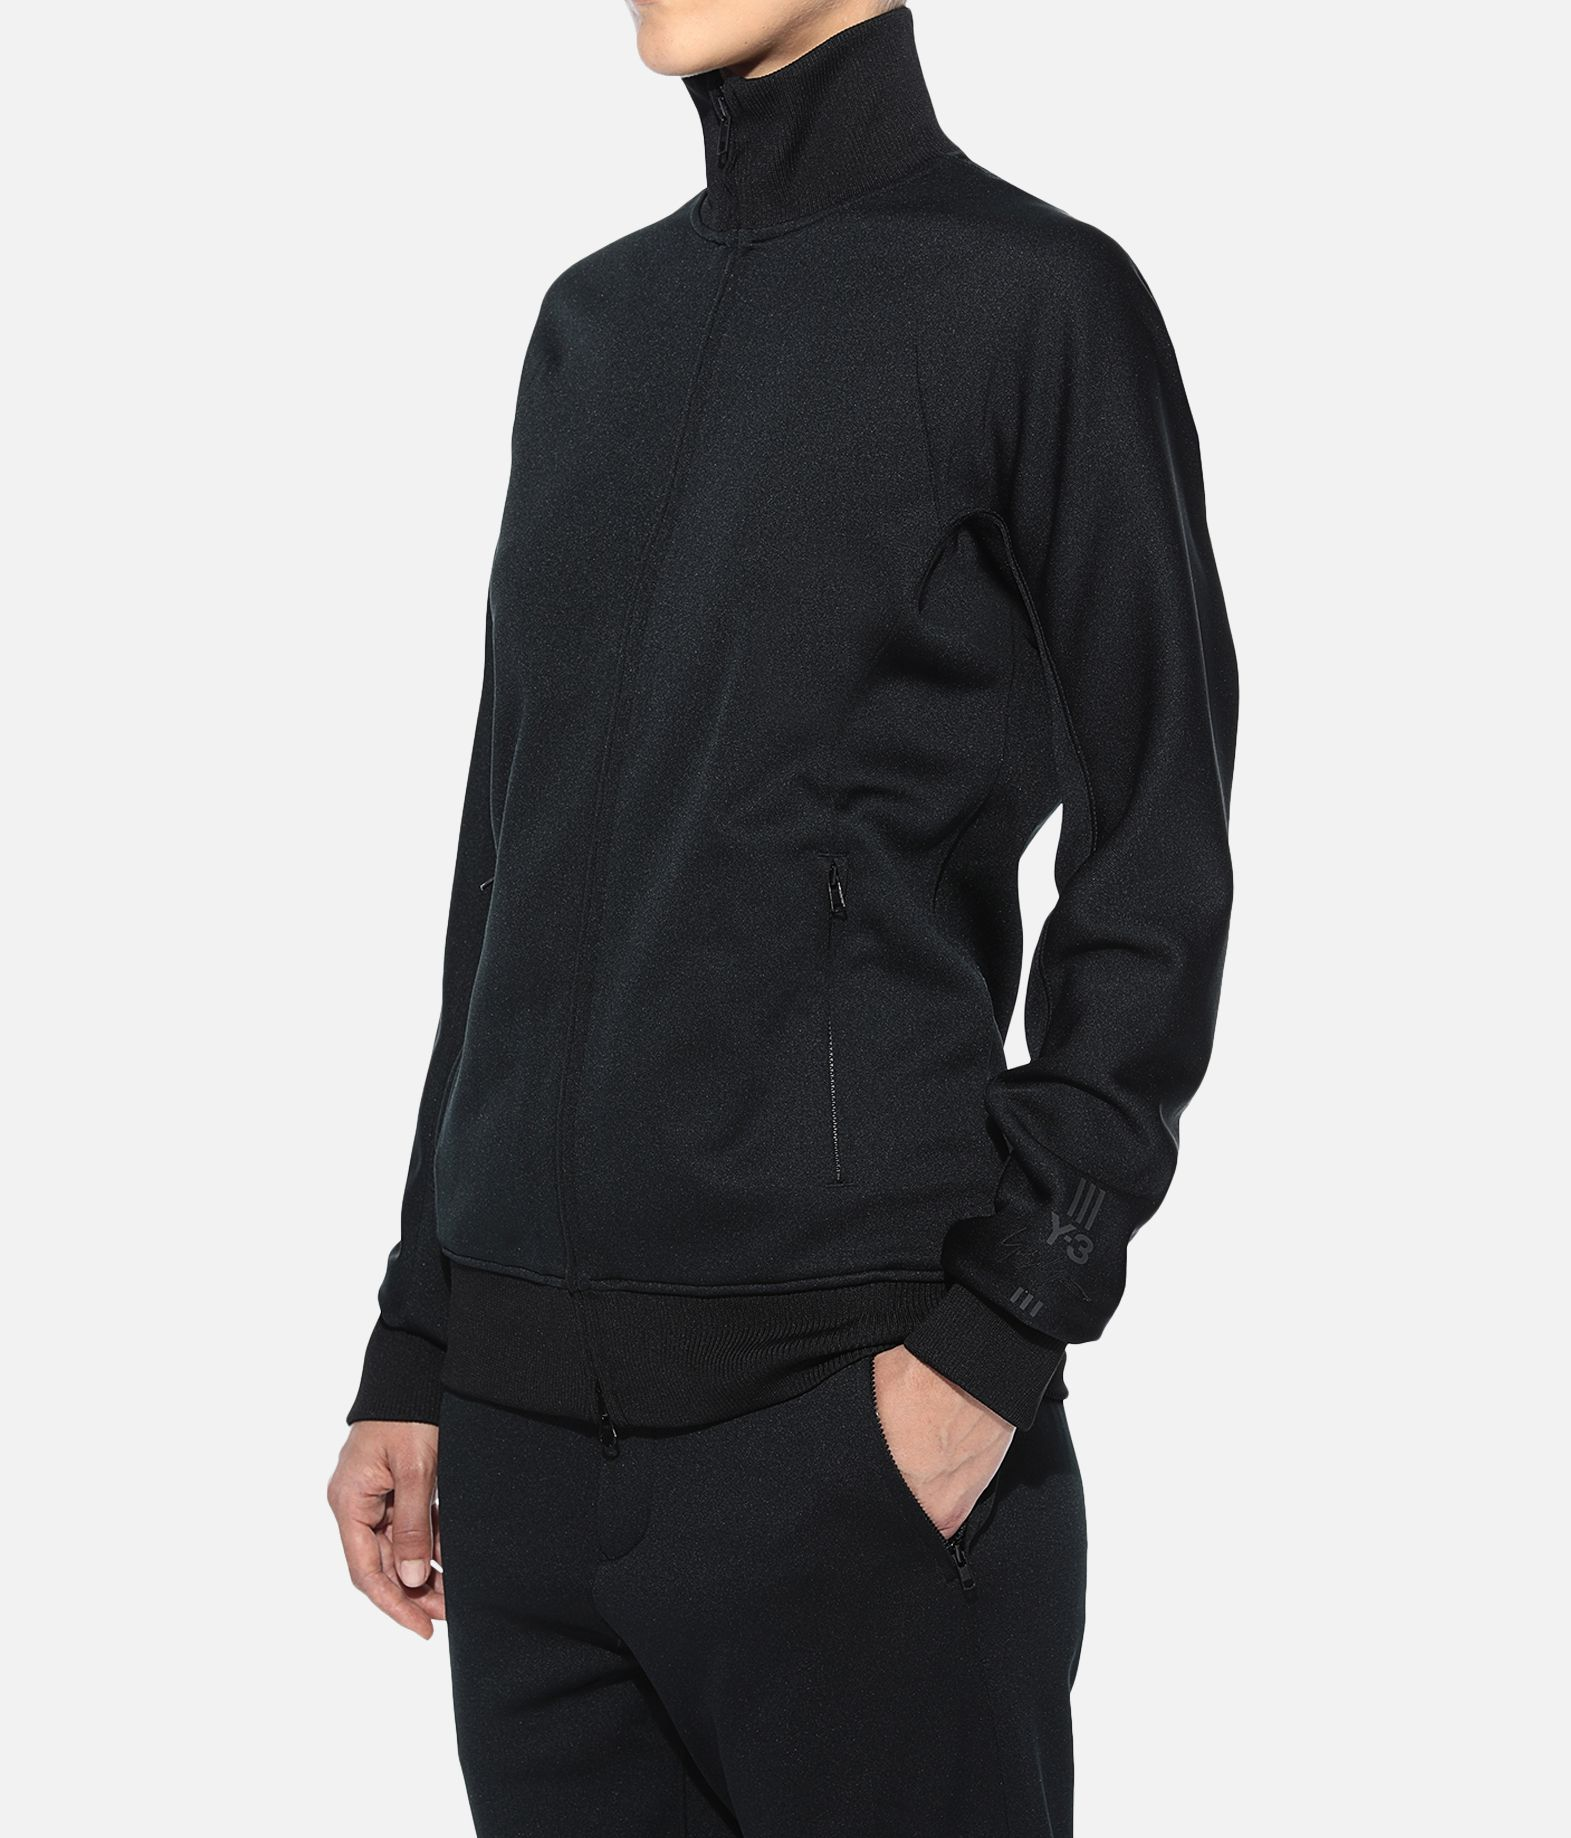 Y-3 Y-3 New Classic Track Jacket Jacket Woman e